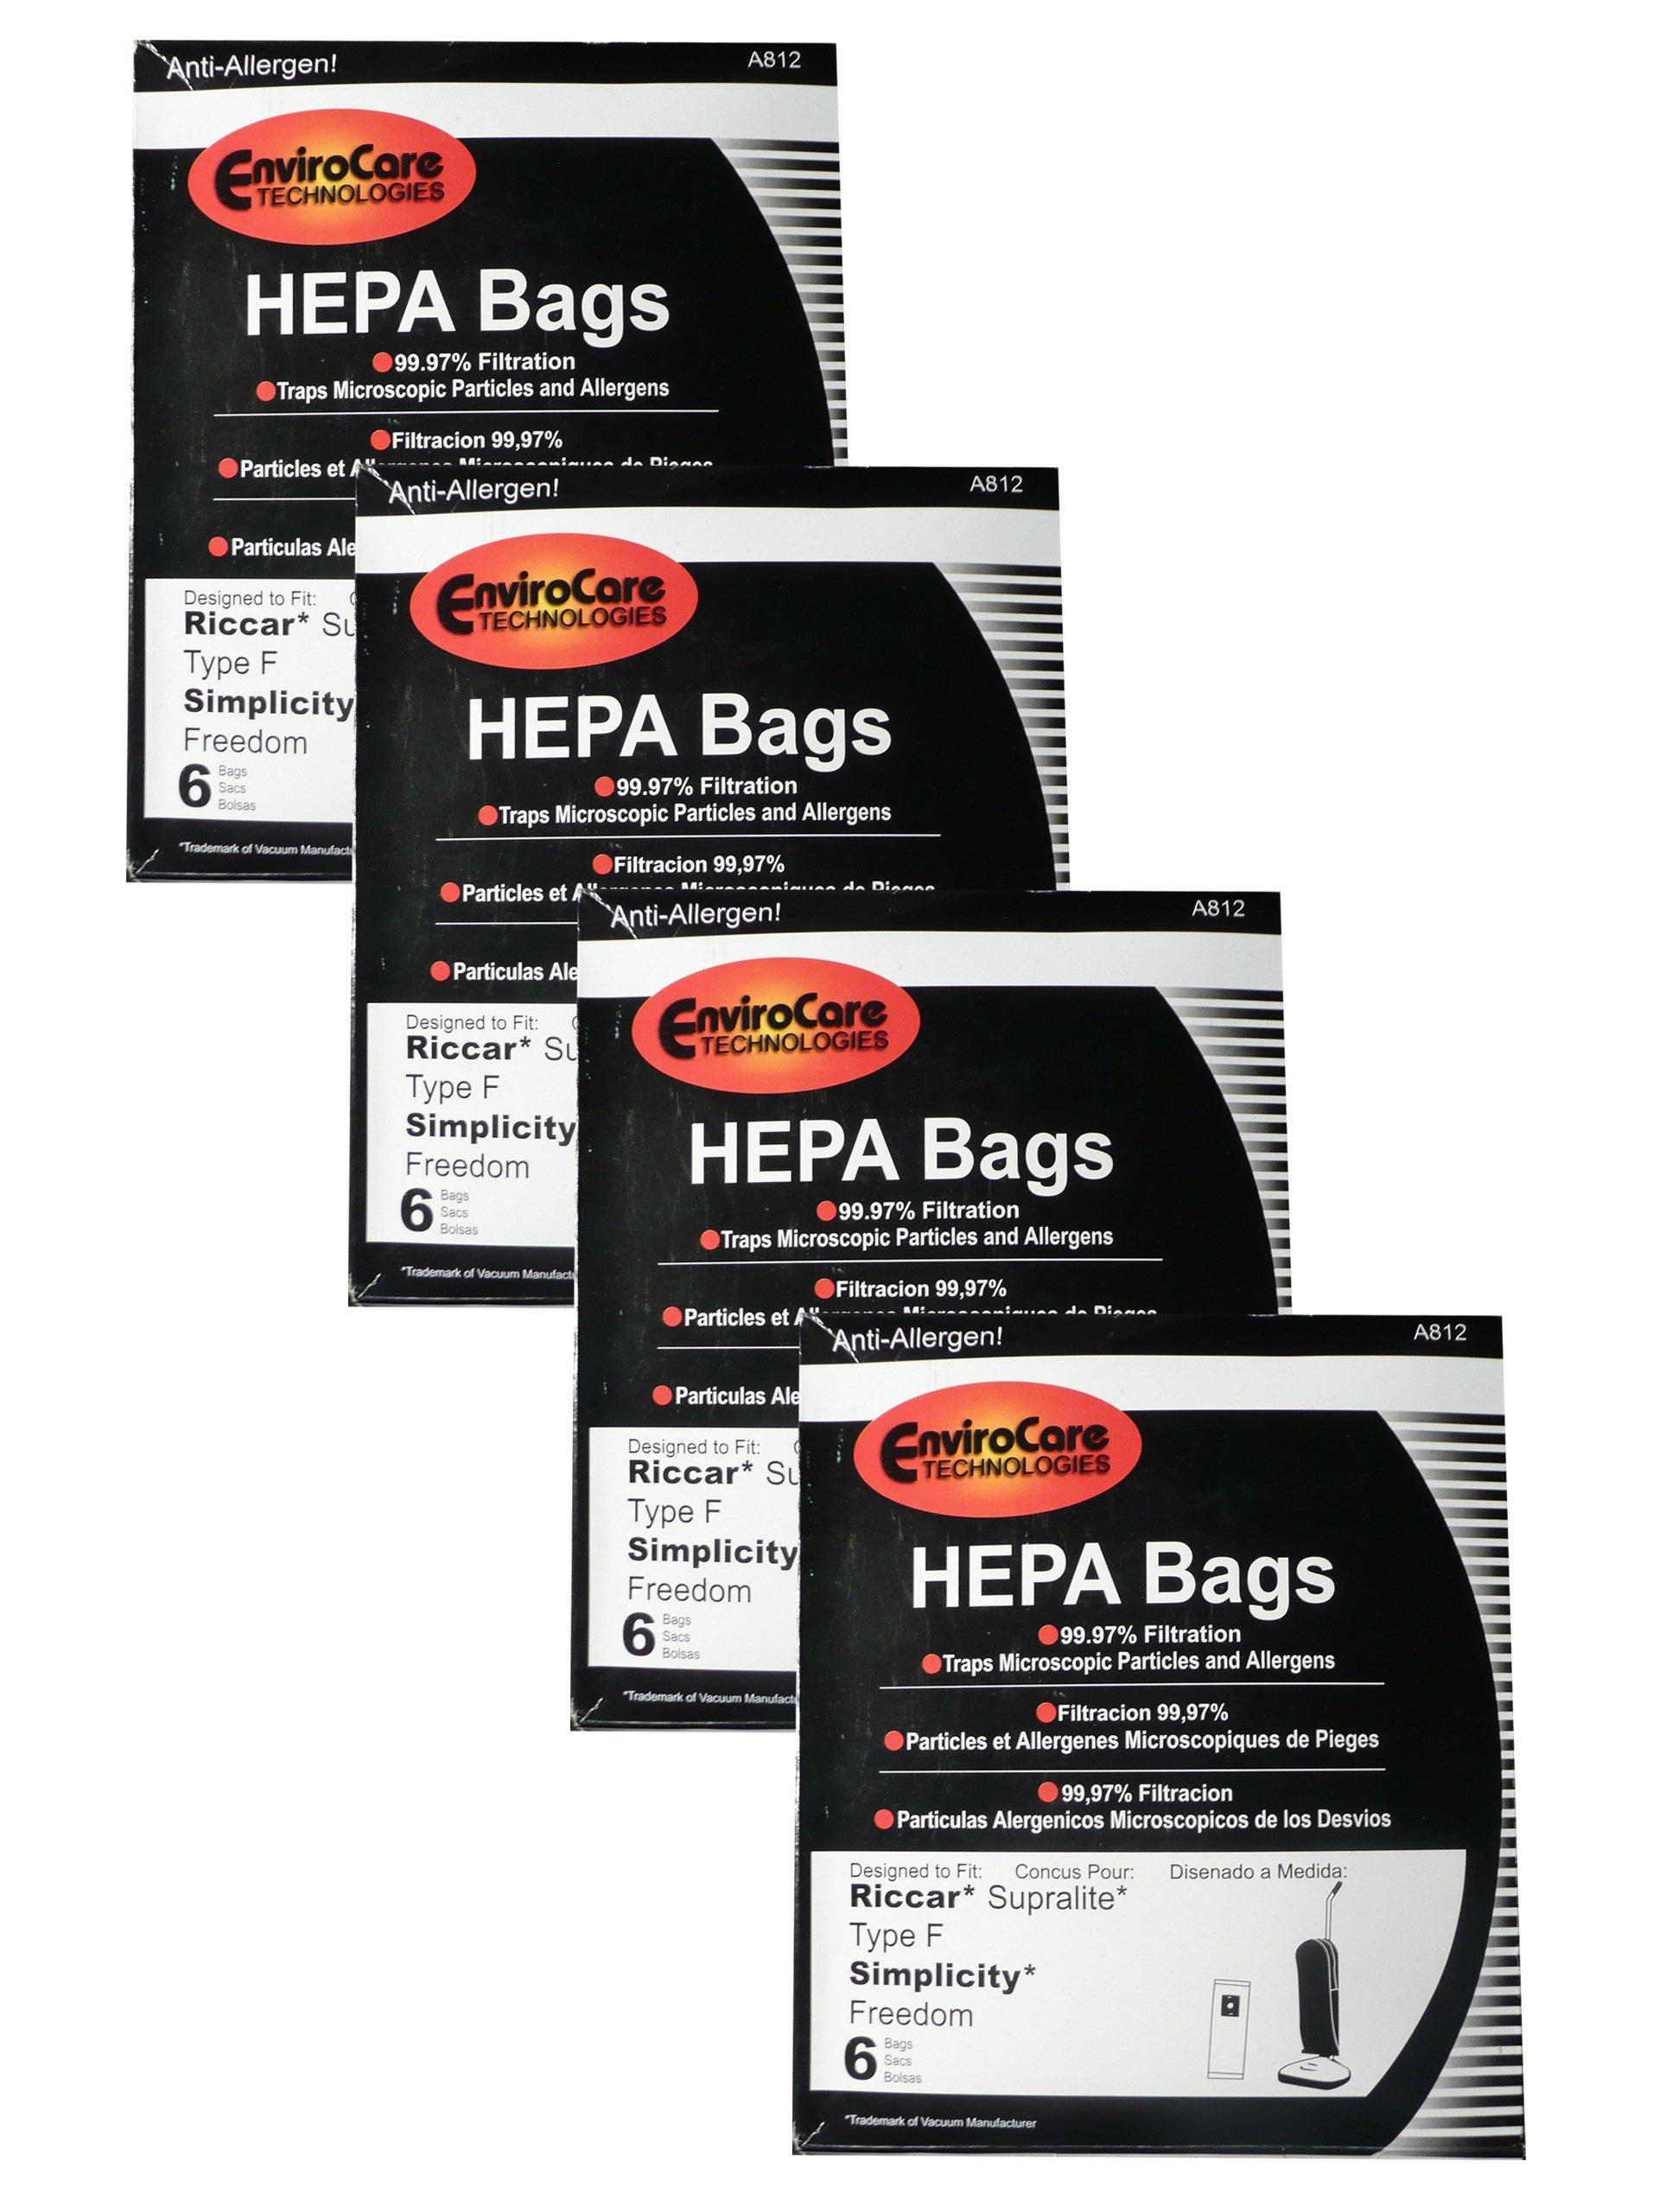 24 Riccar HEPA Type F Vacuum Bags, Simplicity, Freedom, Supralite, Canister Vacuum Cleaners, RSLH-6, SF-6, RSL1, RSL1A, RSL1AC, RSL3C, RSL2, RSL3, RSL4, RSL5, RSL5C, SLPLUS, RFH-6, F3500